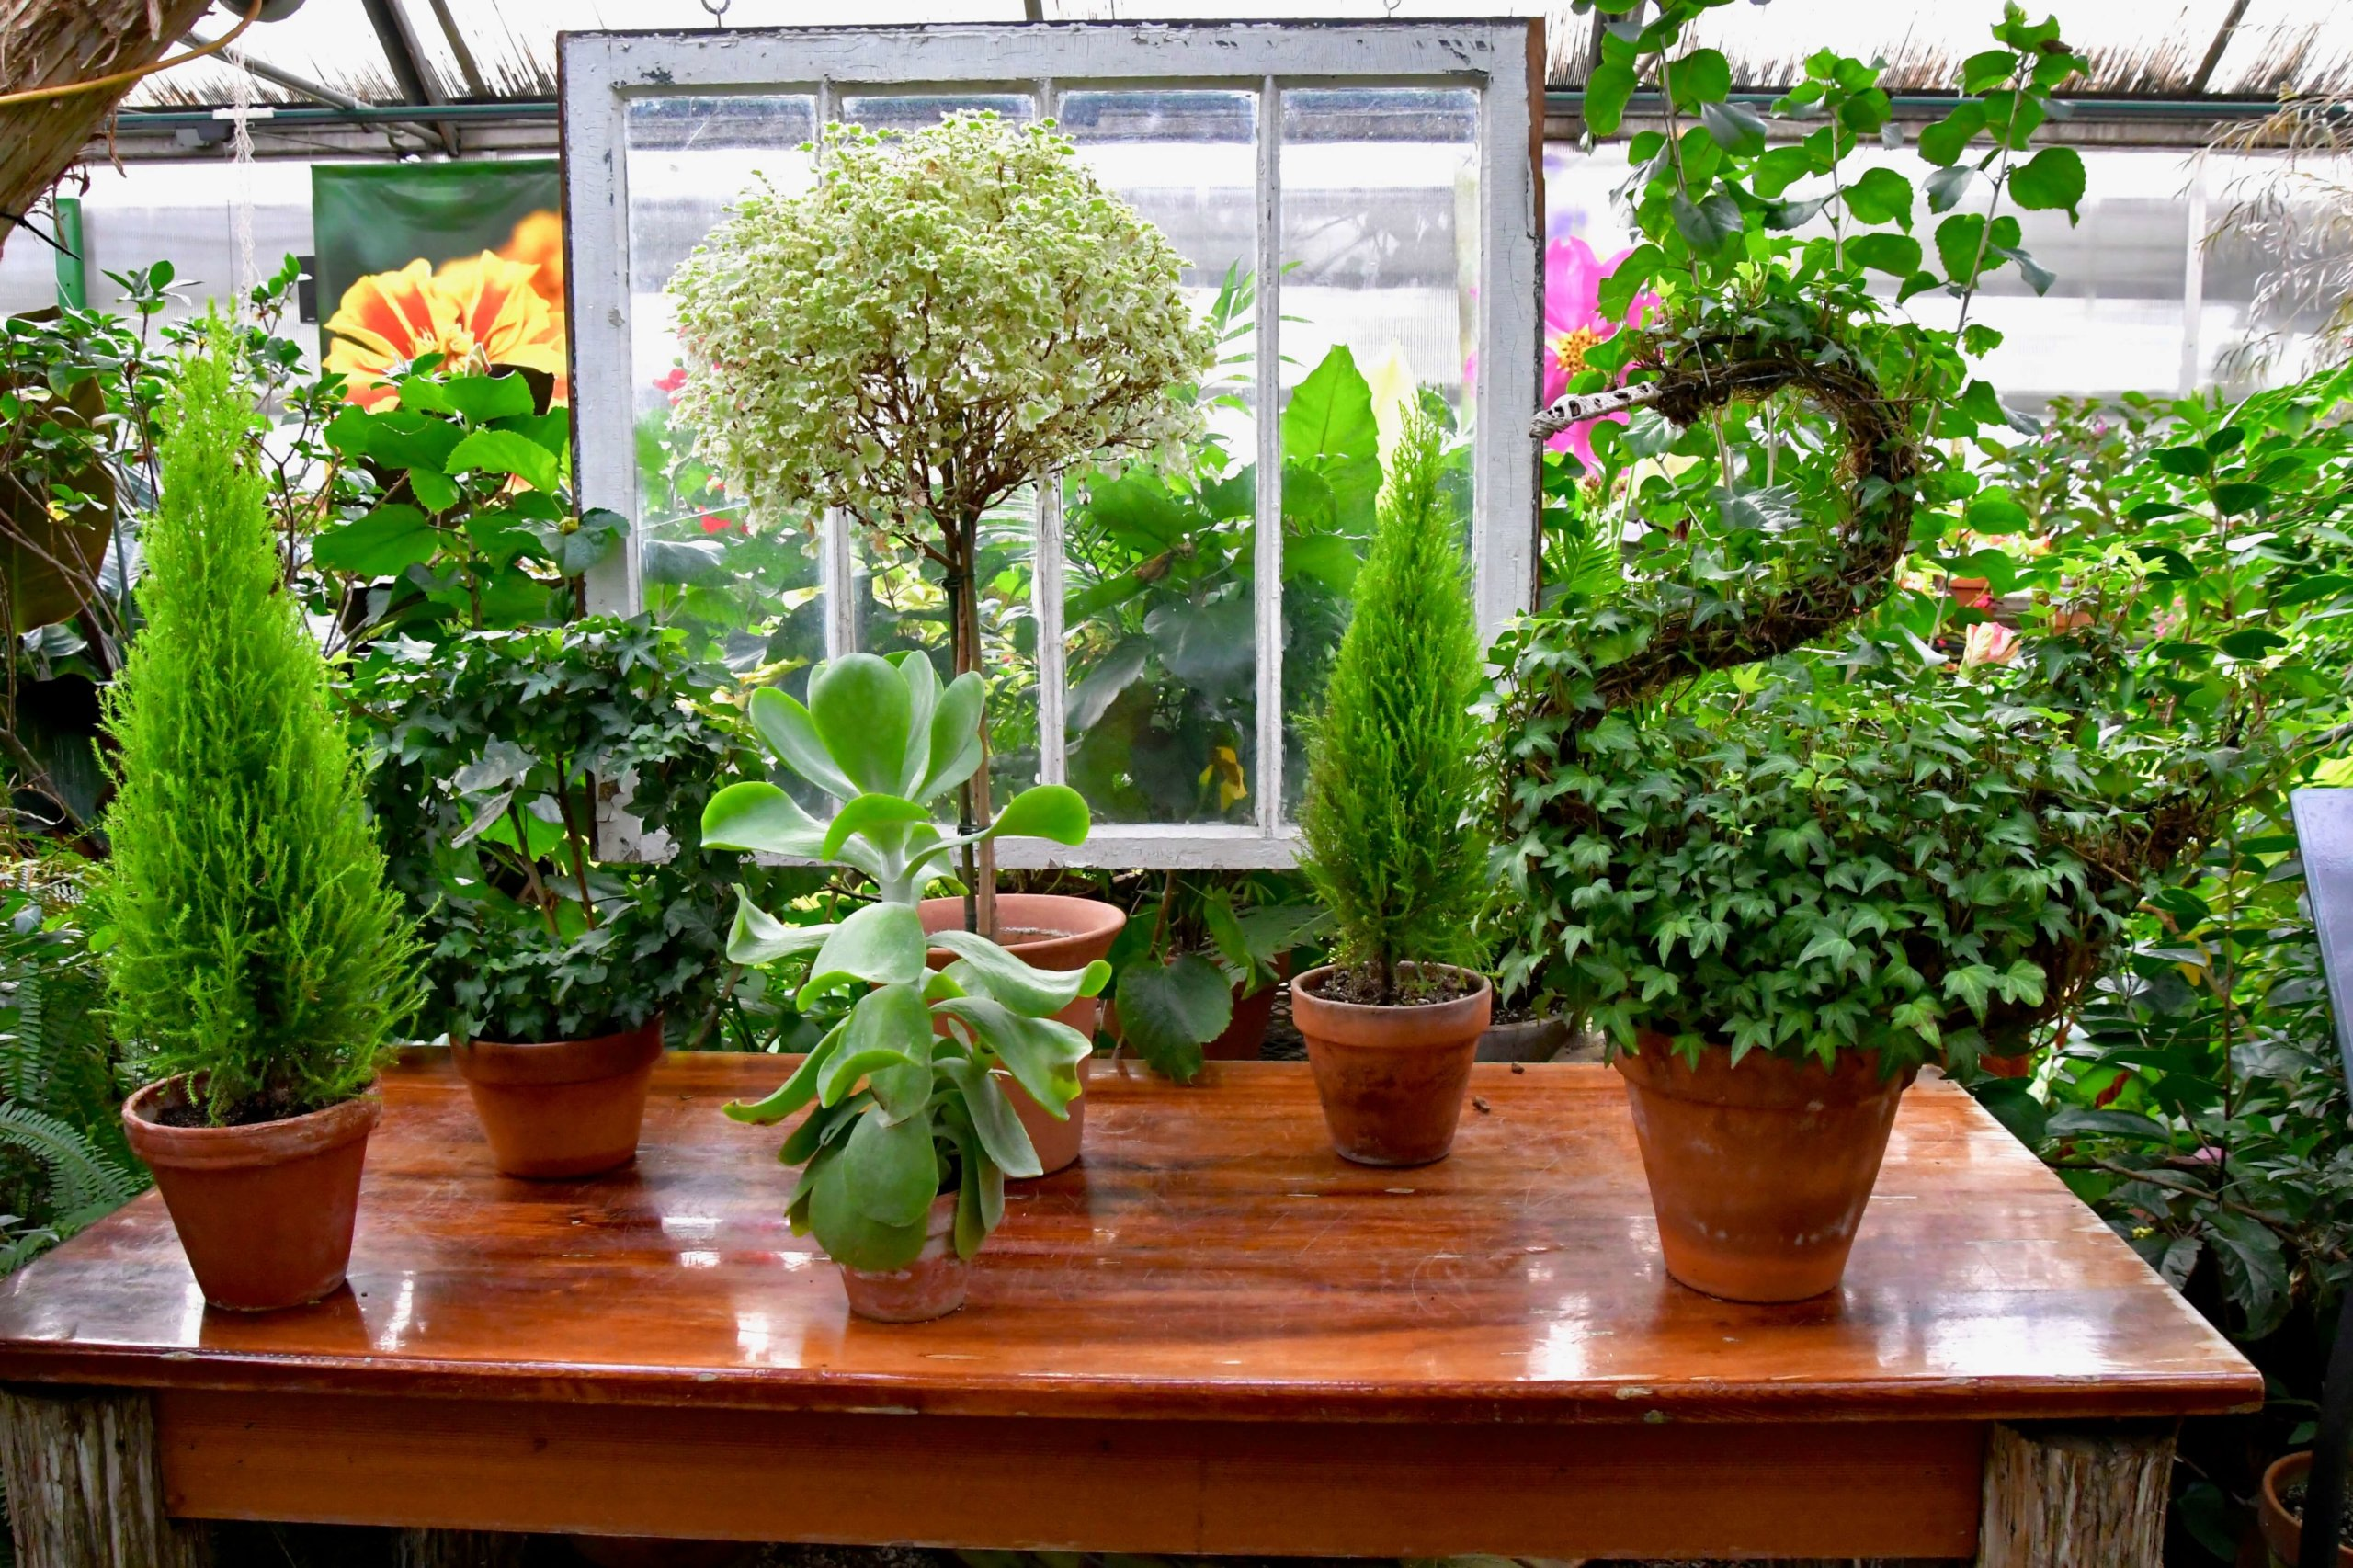 A creative topiary display in the Gardeners Show House.